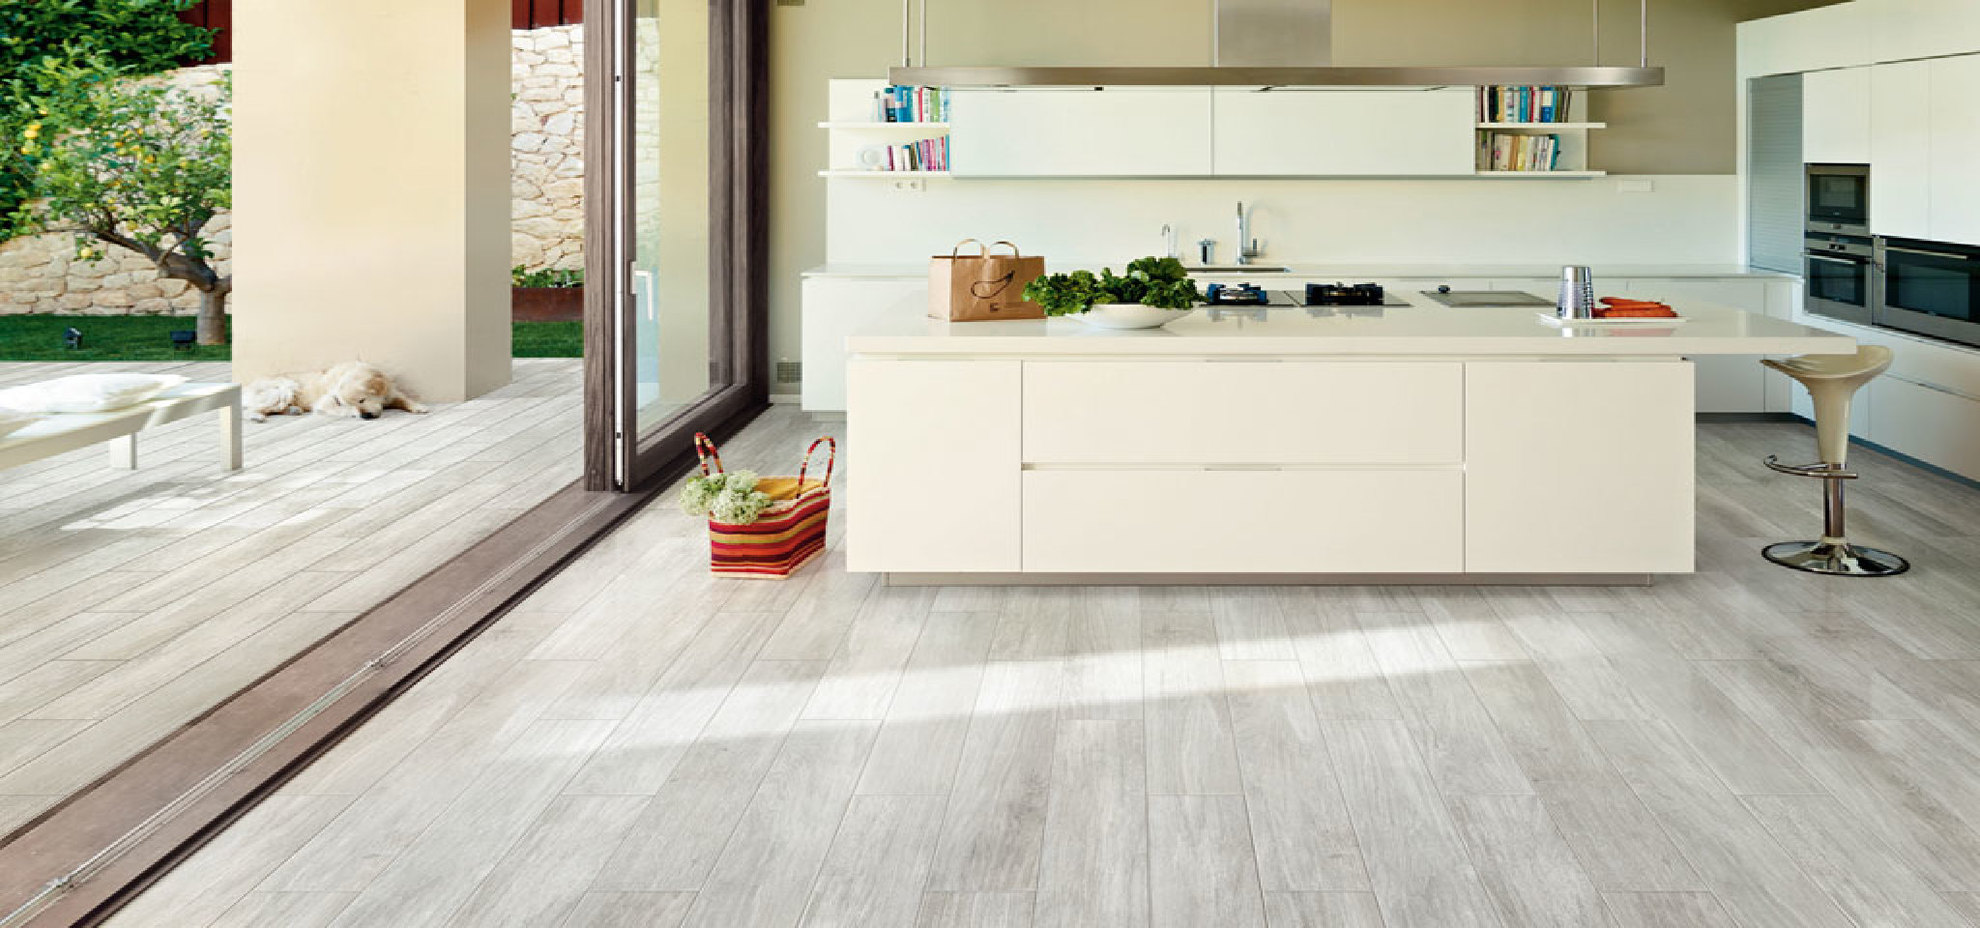 Great French Woods: Wood Effect Porcelain Surfaces